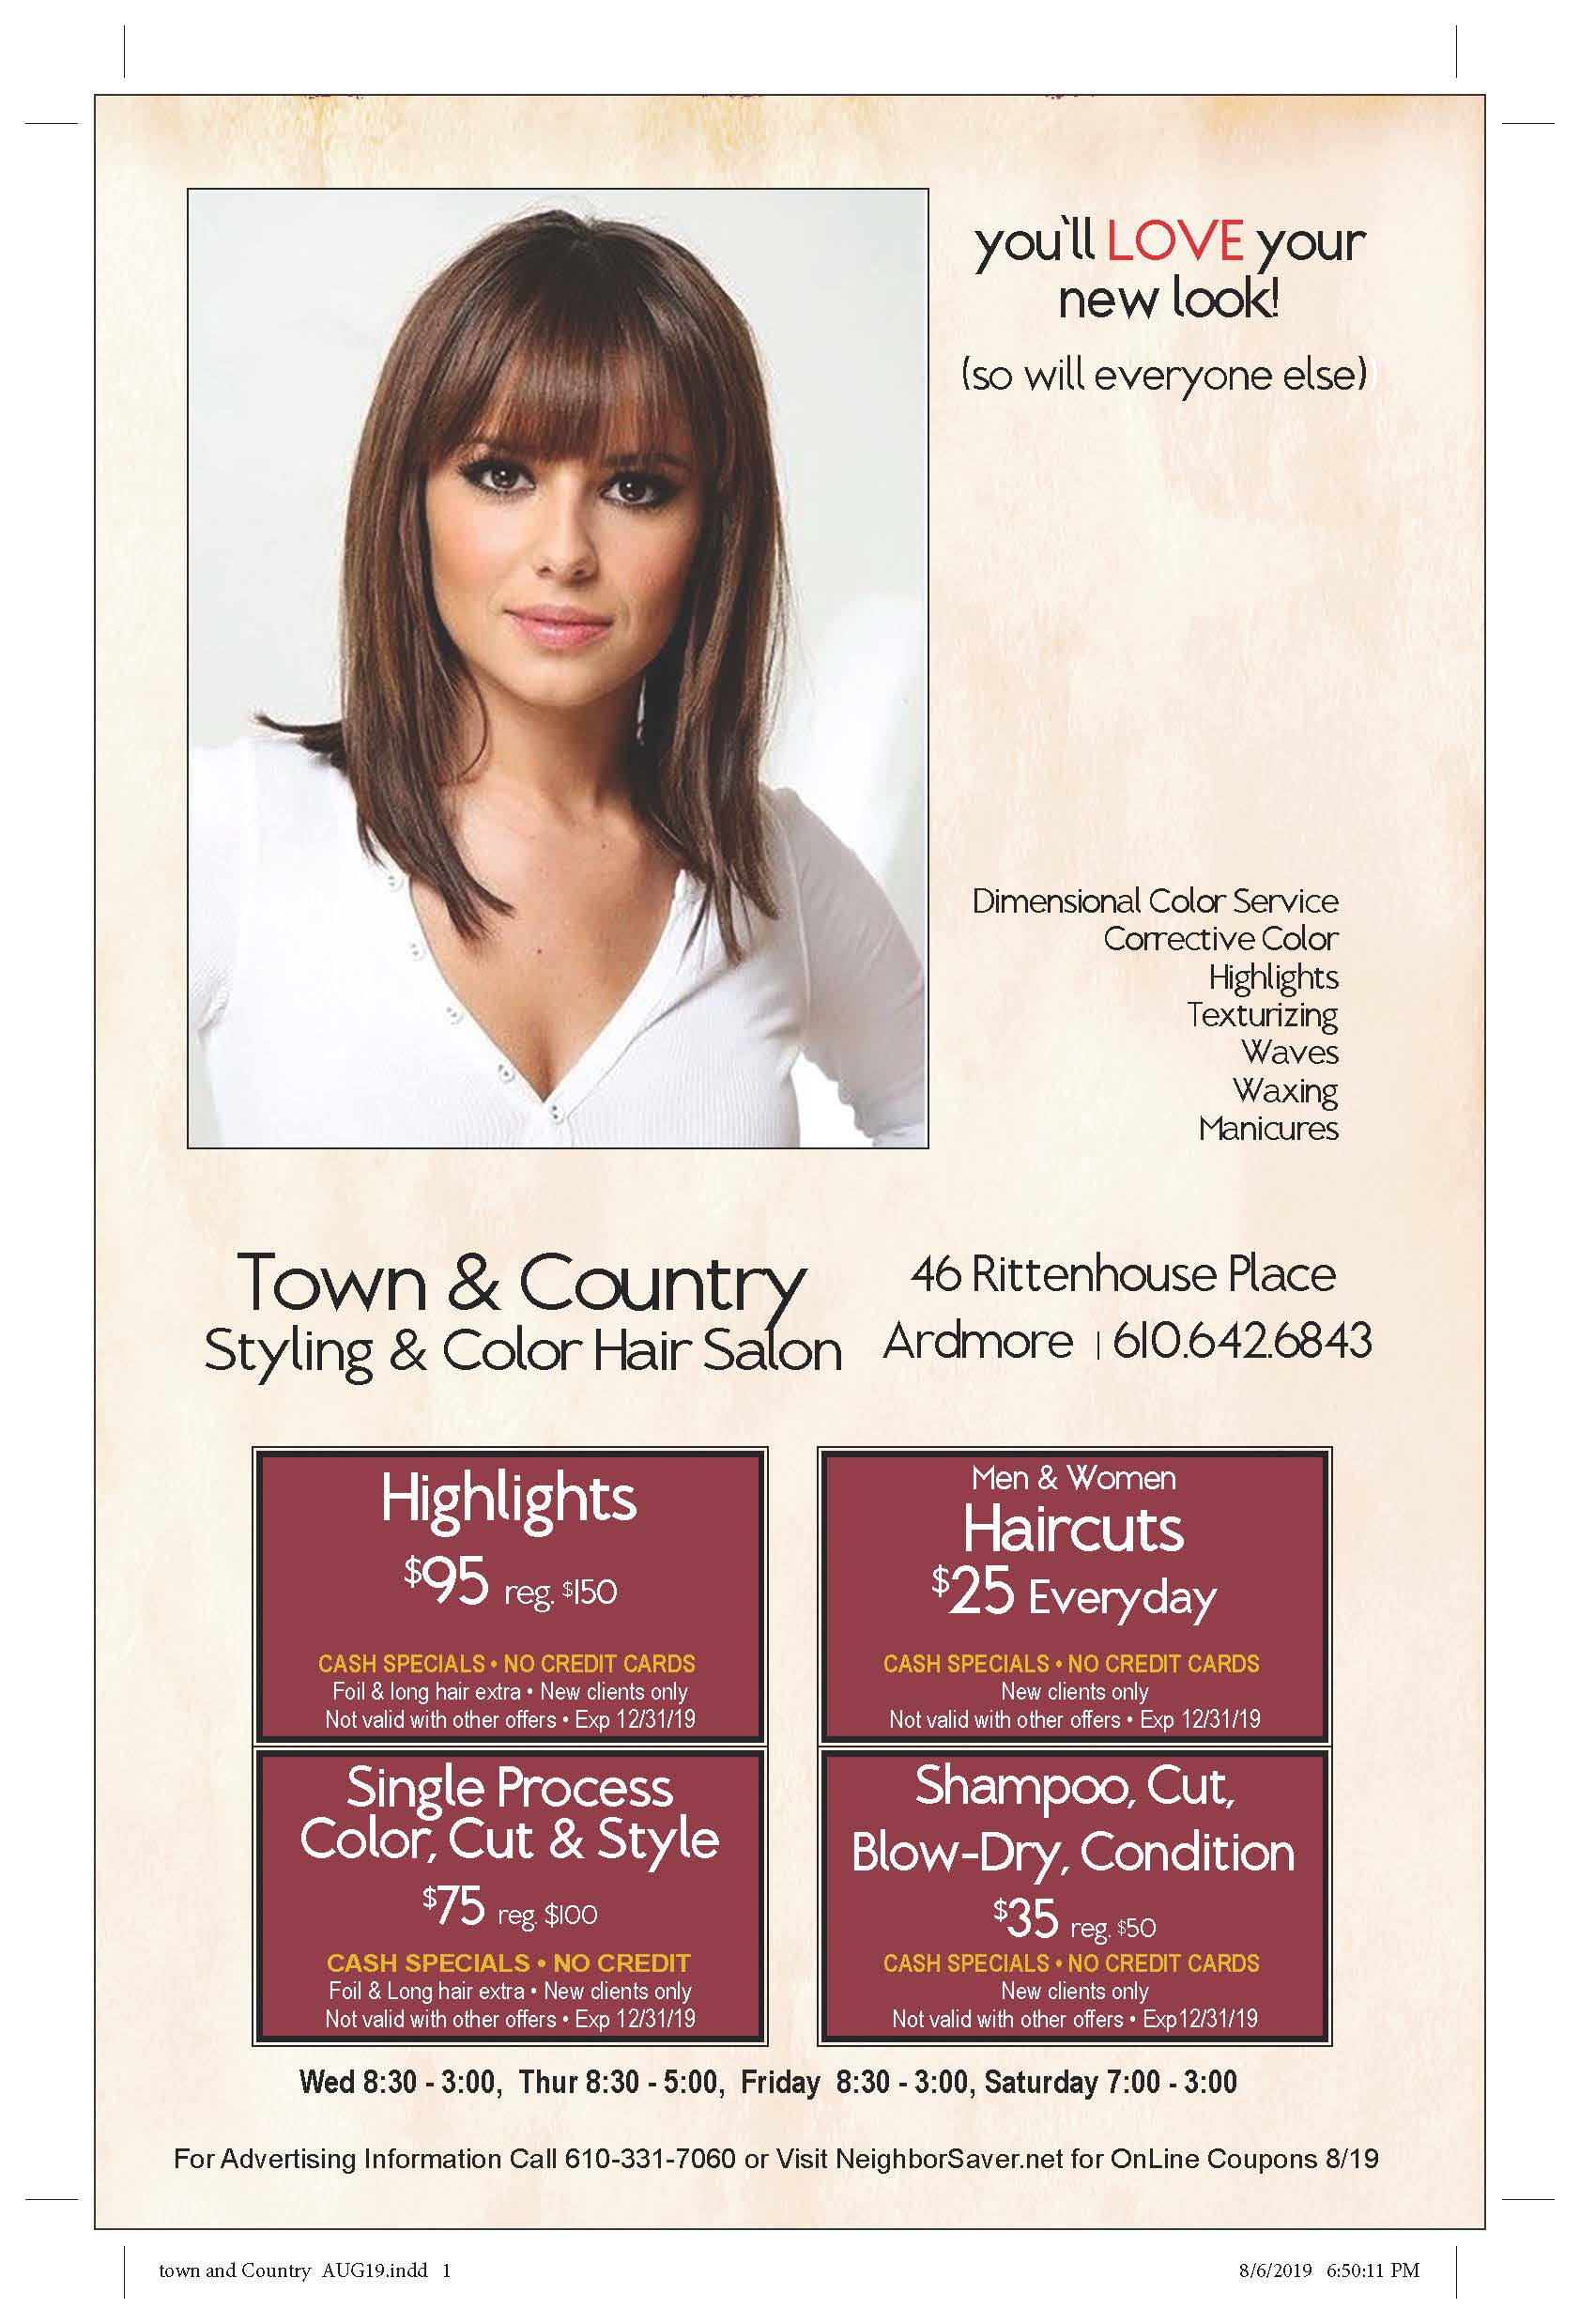 Town & Country September ad